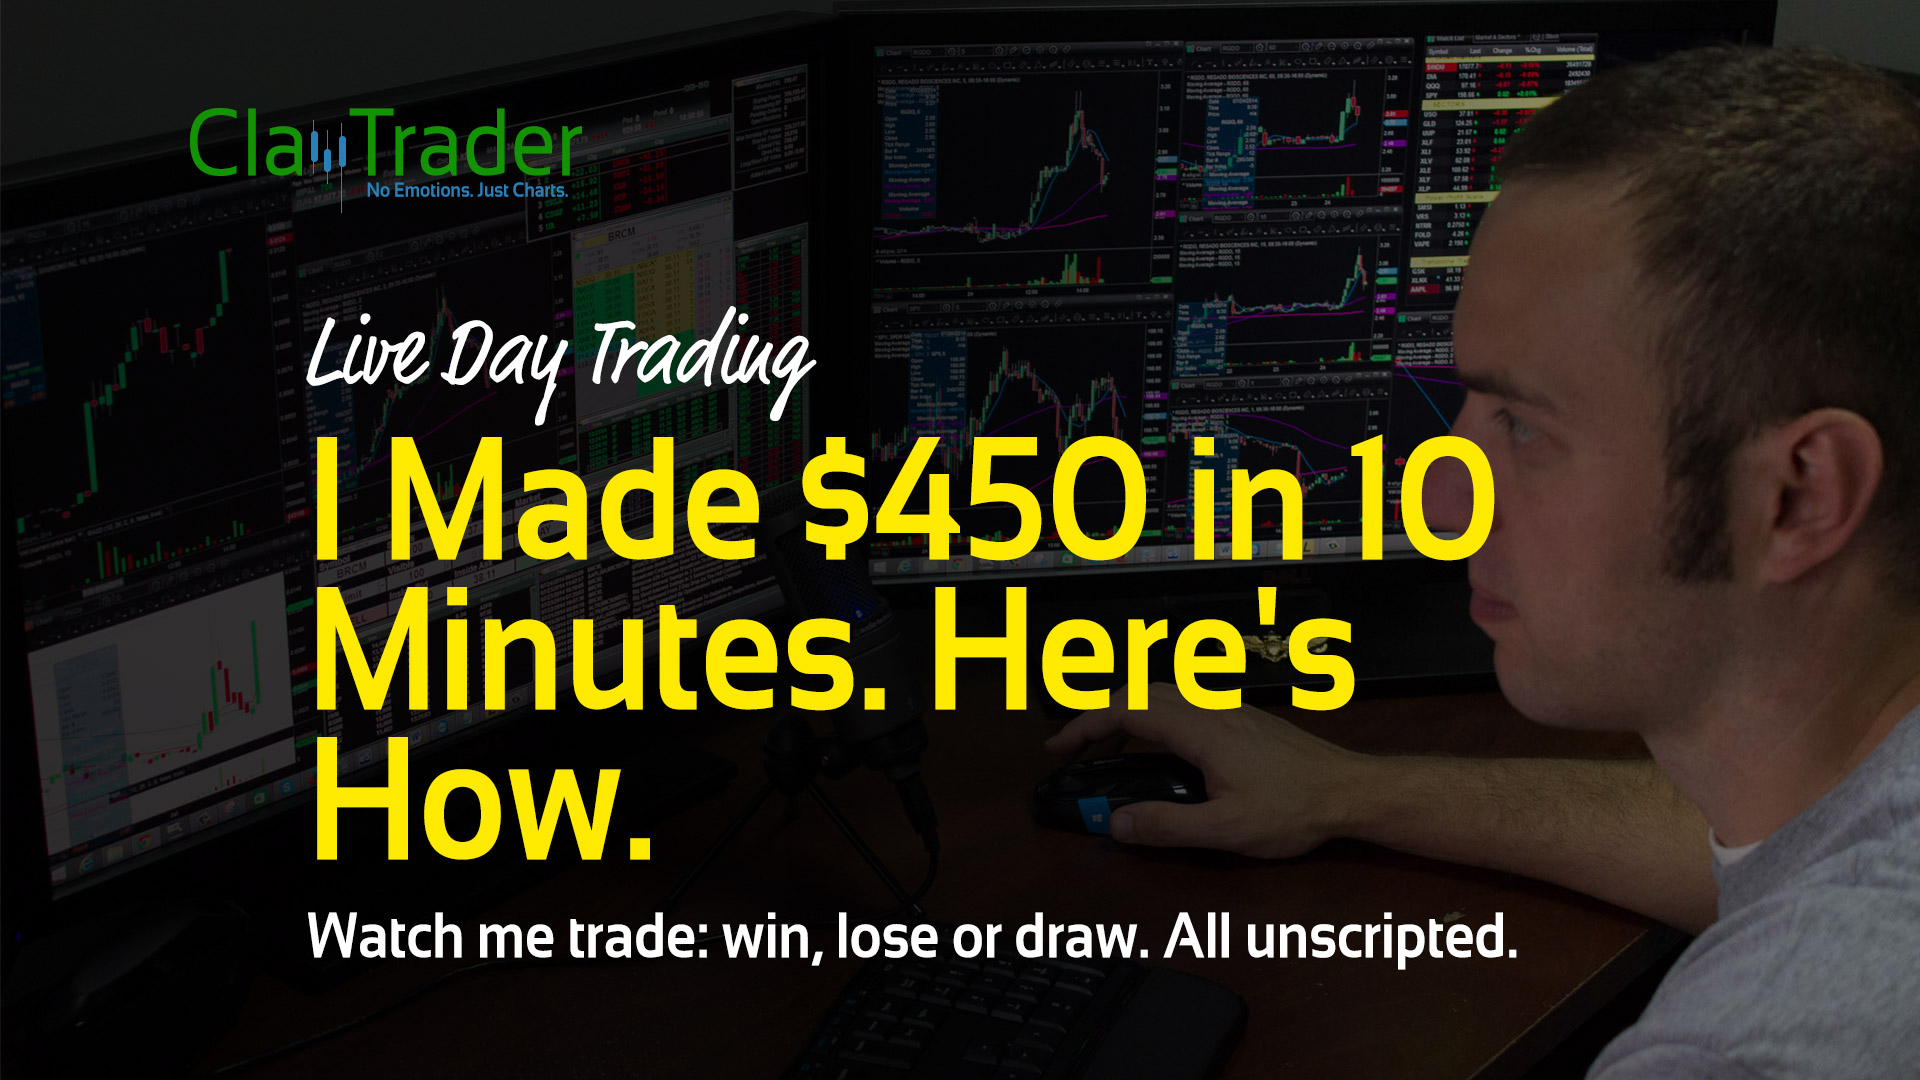 I Made $450 in 10 Minutes. Here's How.